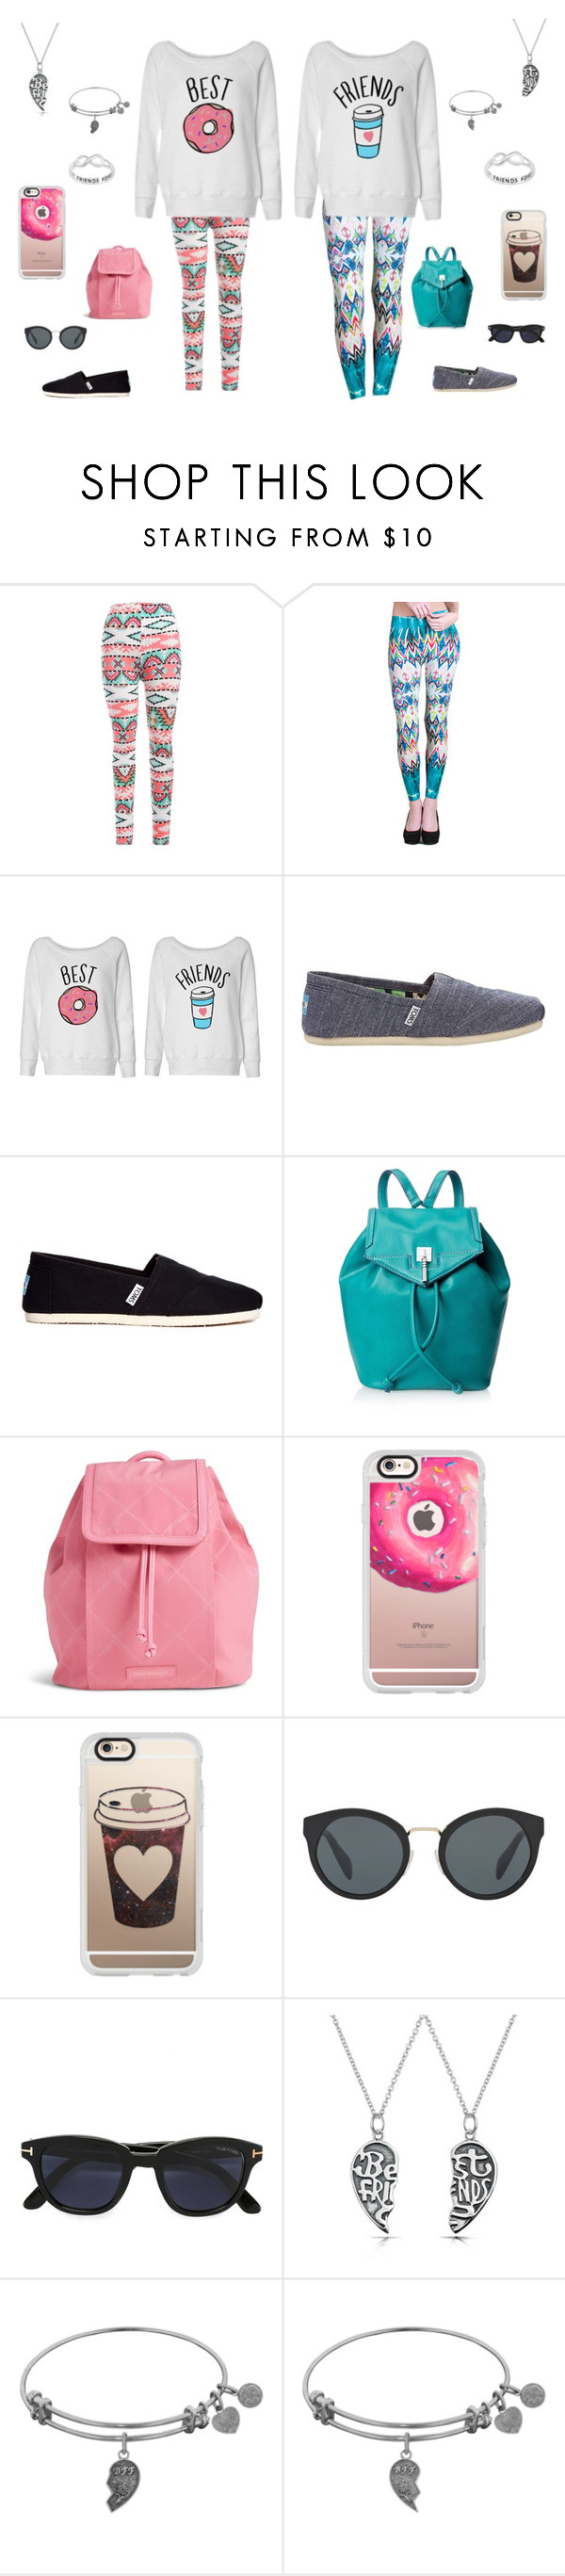 """""""Untitled #165"""" by b-bryant1816 on Polyvore featuring Nikibiki, TOMS, Danielle Nicole, Vera Bradley, Casetify, Prada, Tom Ford and Bling Jewelry"""